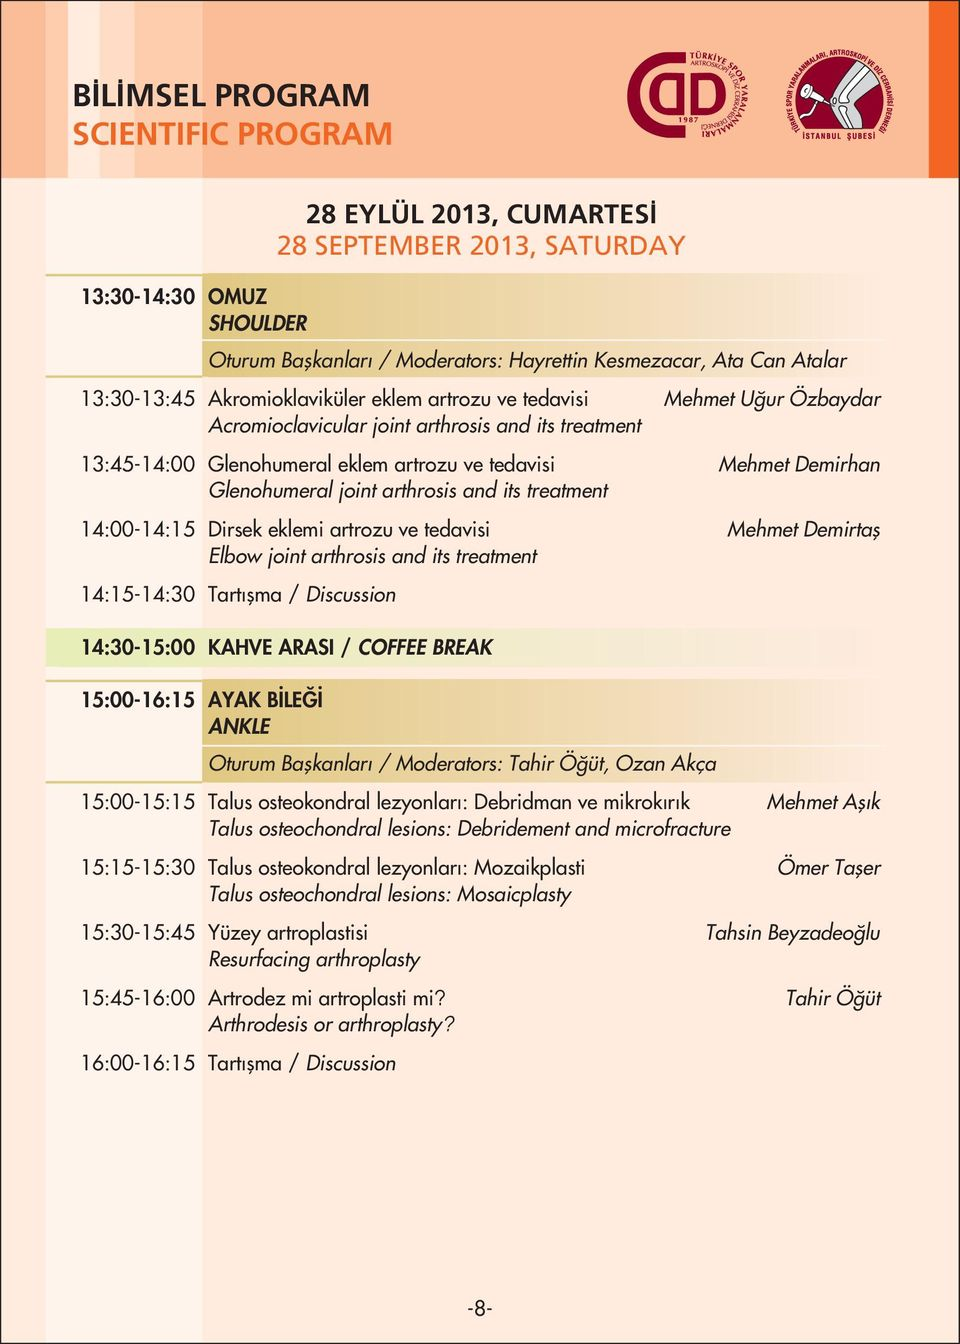 joint arthrosis and its treatment 14:00-14:15 Dirsek eklemi artrozu ve tedavisi Mehmet Demirtafl Elbow joint arthrosis and its treatment 14:15-14:30 Tartıflma / Discussion 14:30-15:00 KAHVE ARASI /